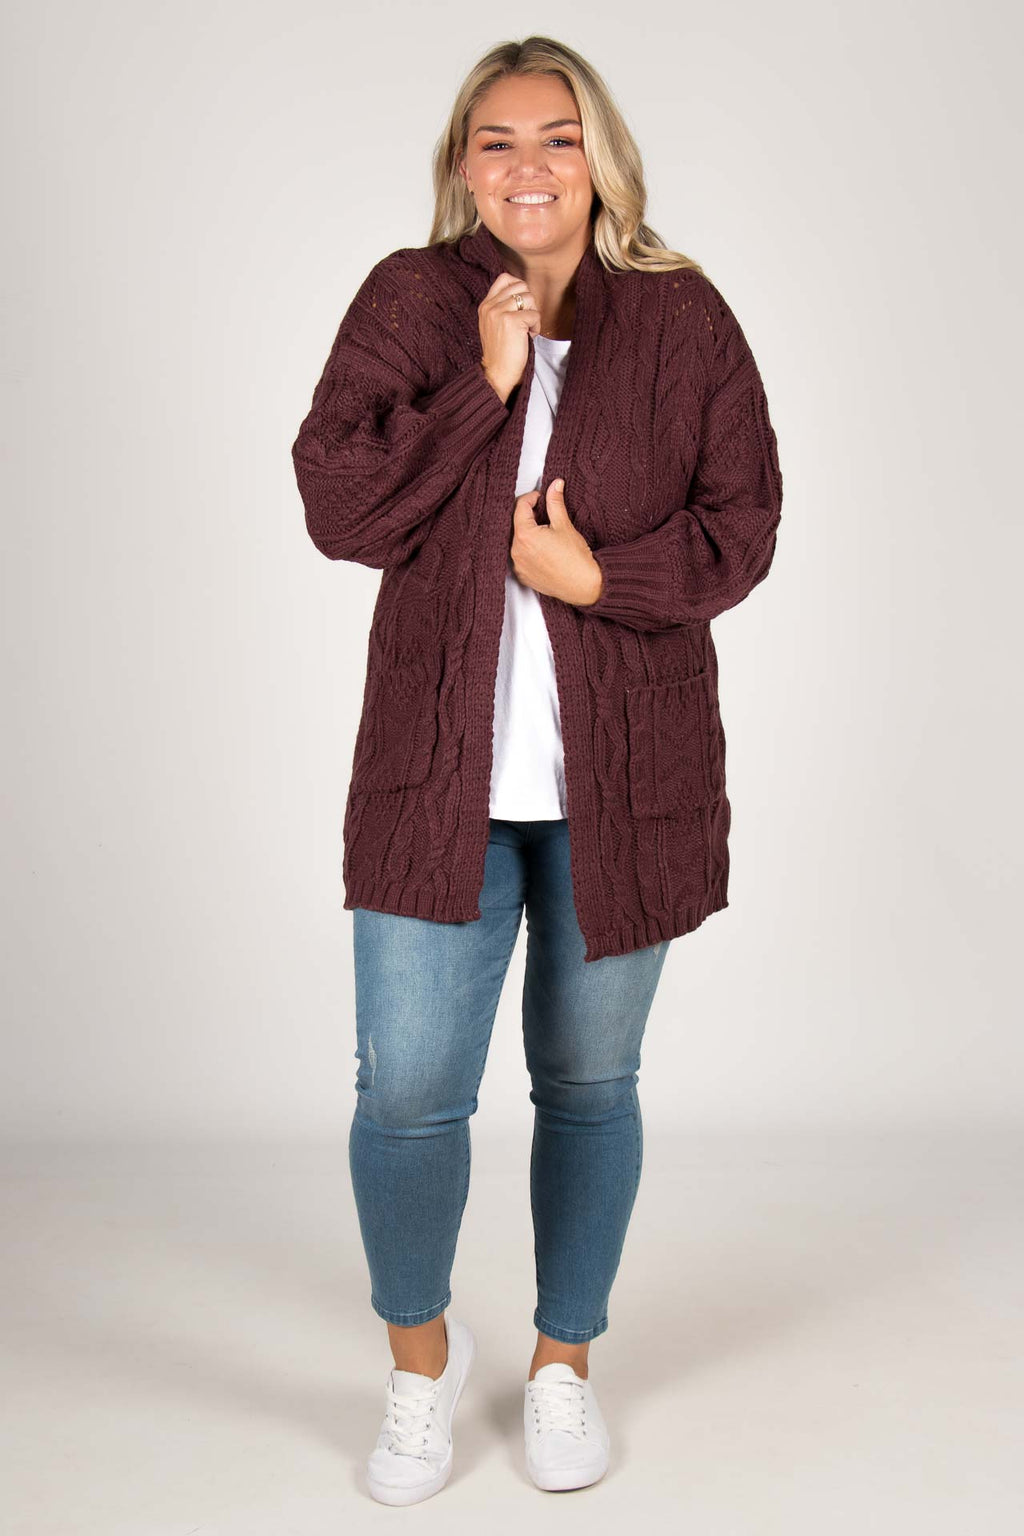 Inspire Cardi in Mulberry